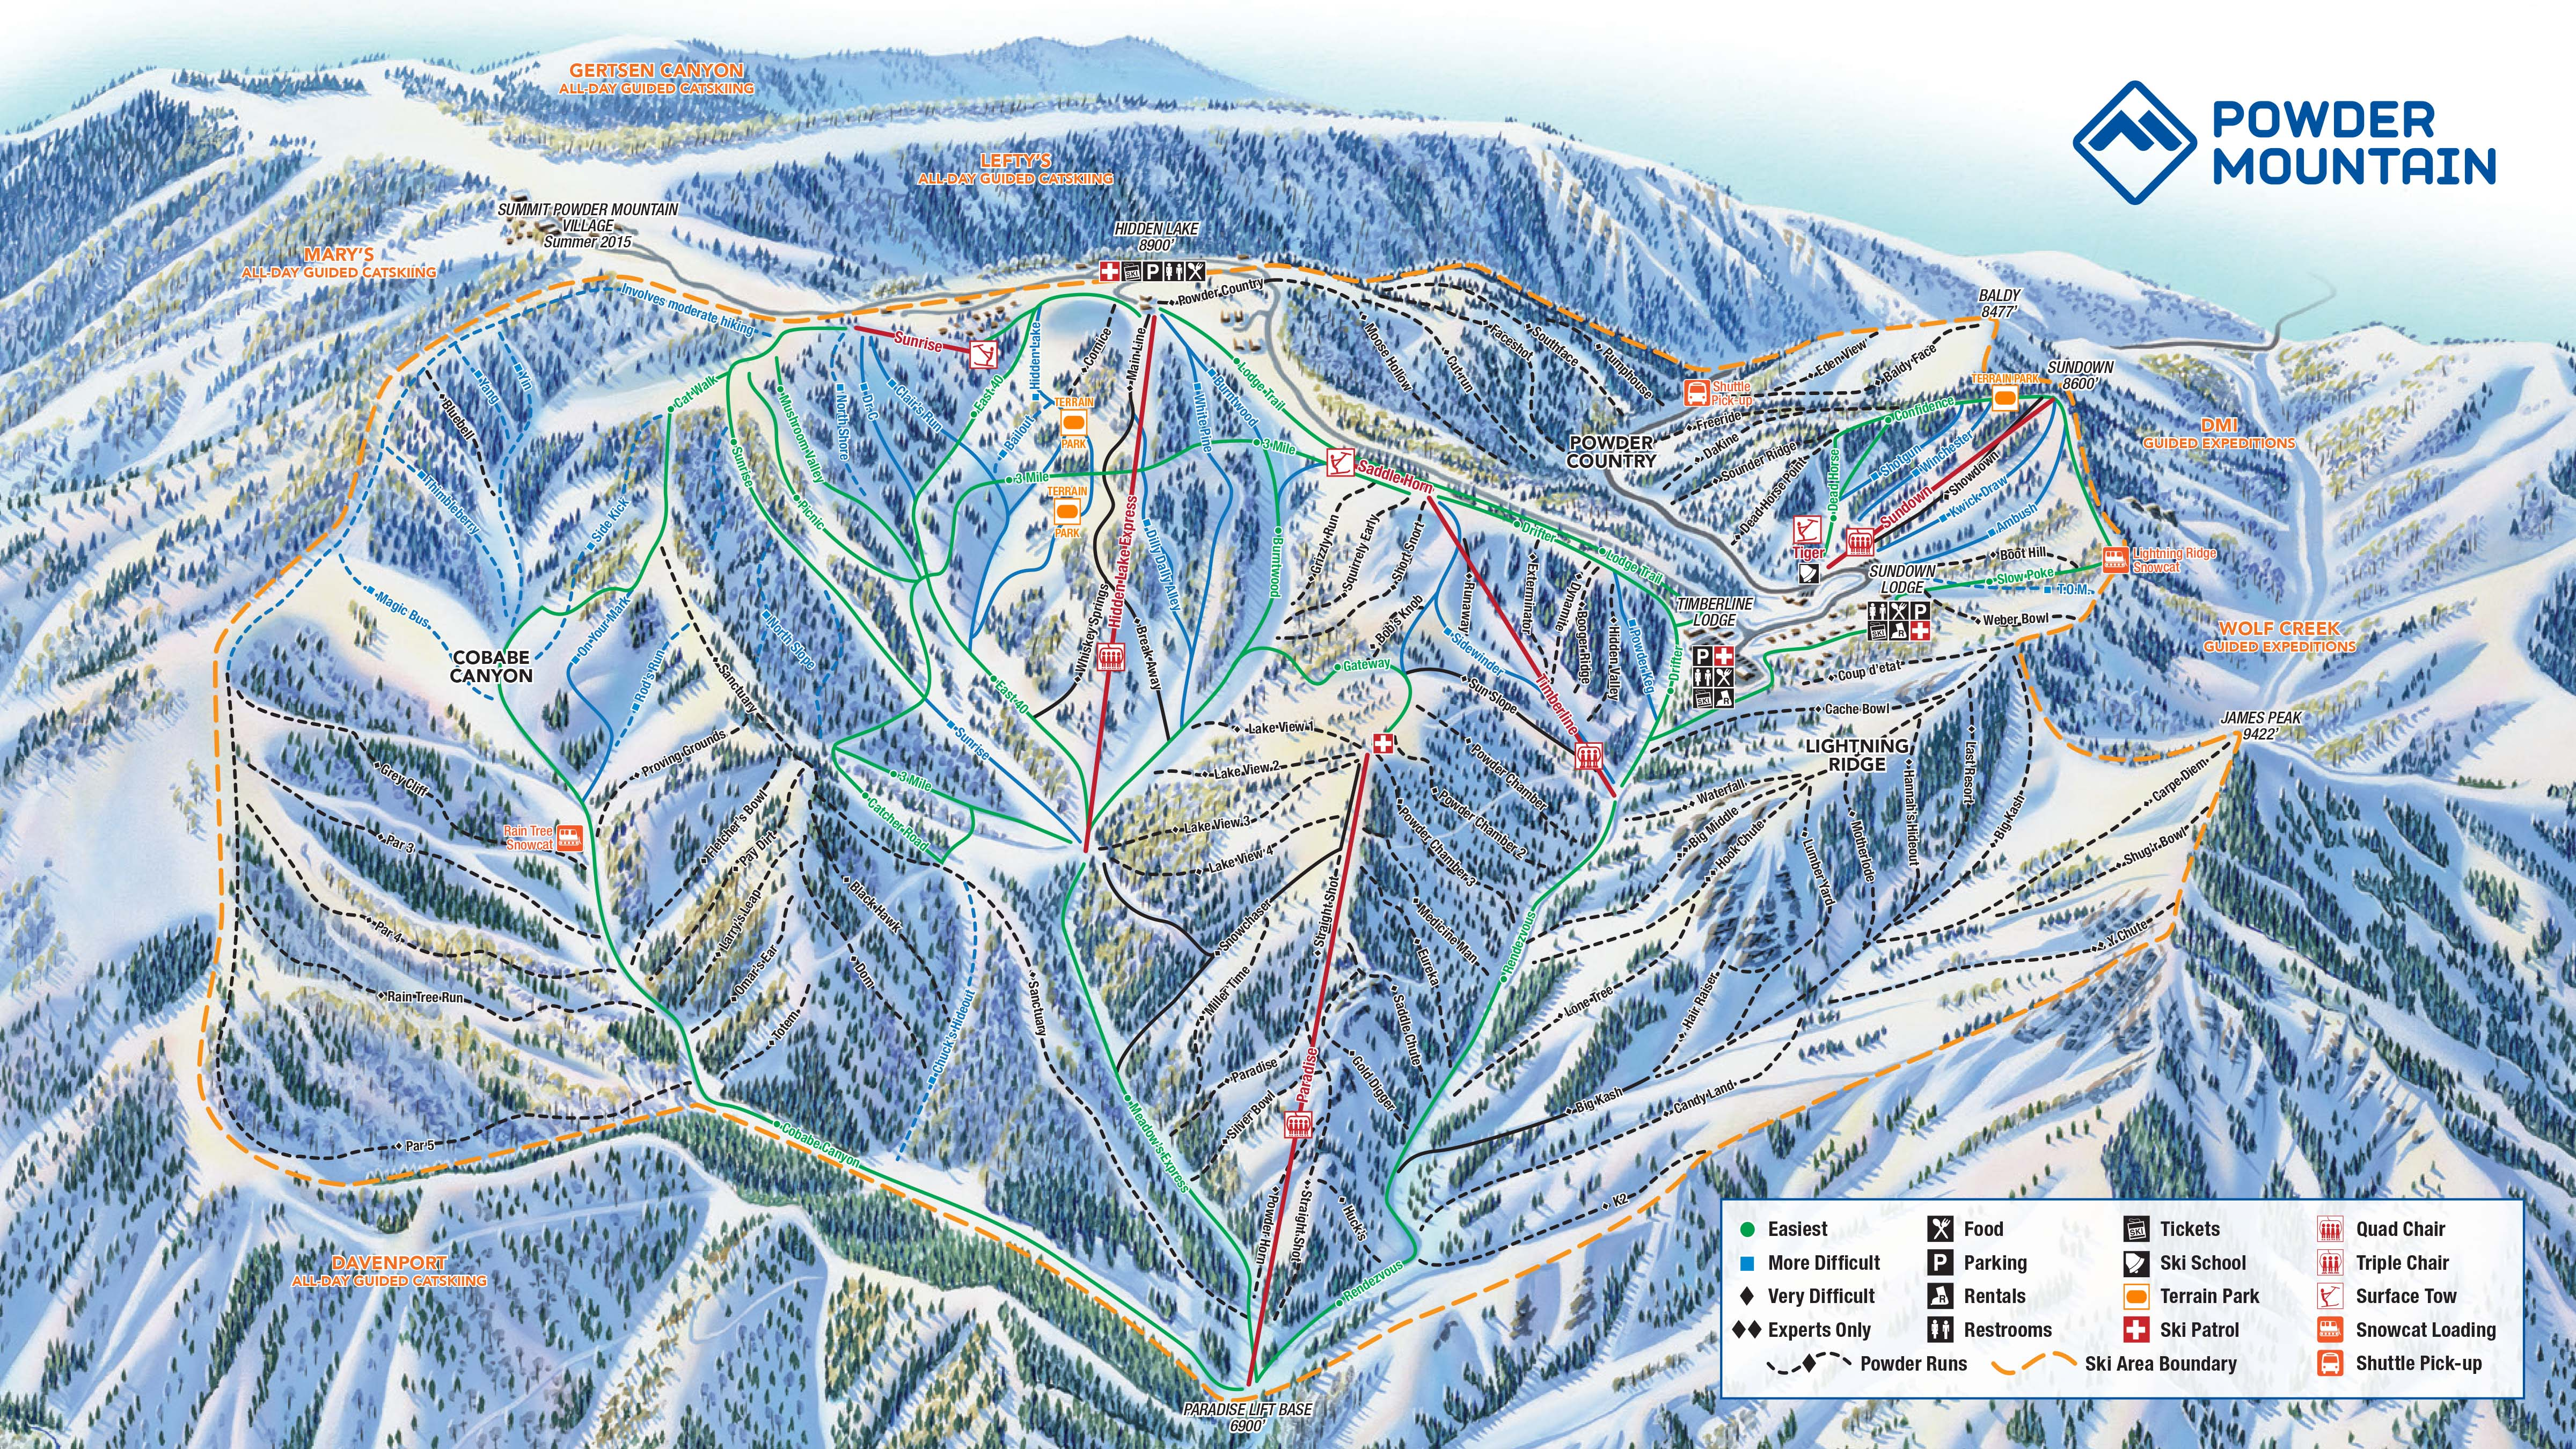 north america map picture with Powder Mountain Ut The New Largest Ski Resort In The Usa At 8000 Acres on Mamanese weebly as well Powder Mountain Ut The New Largest Ski Resort In The Usa At 8000 Acres likewise File Tadoussac   QC   Blick auf den Ort together with A4 24 32 01300000175658122269323206315 furthermore Meeru Island Resort And Spa.